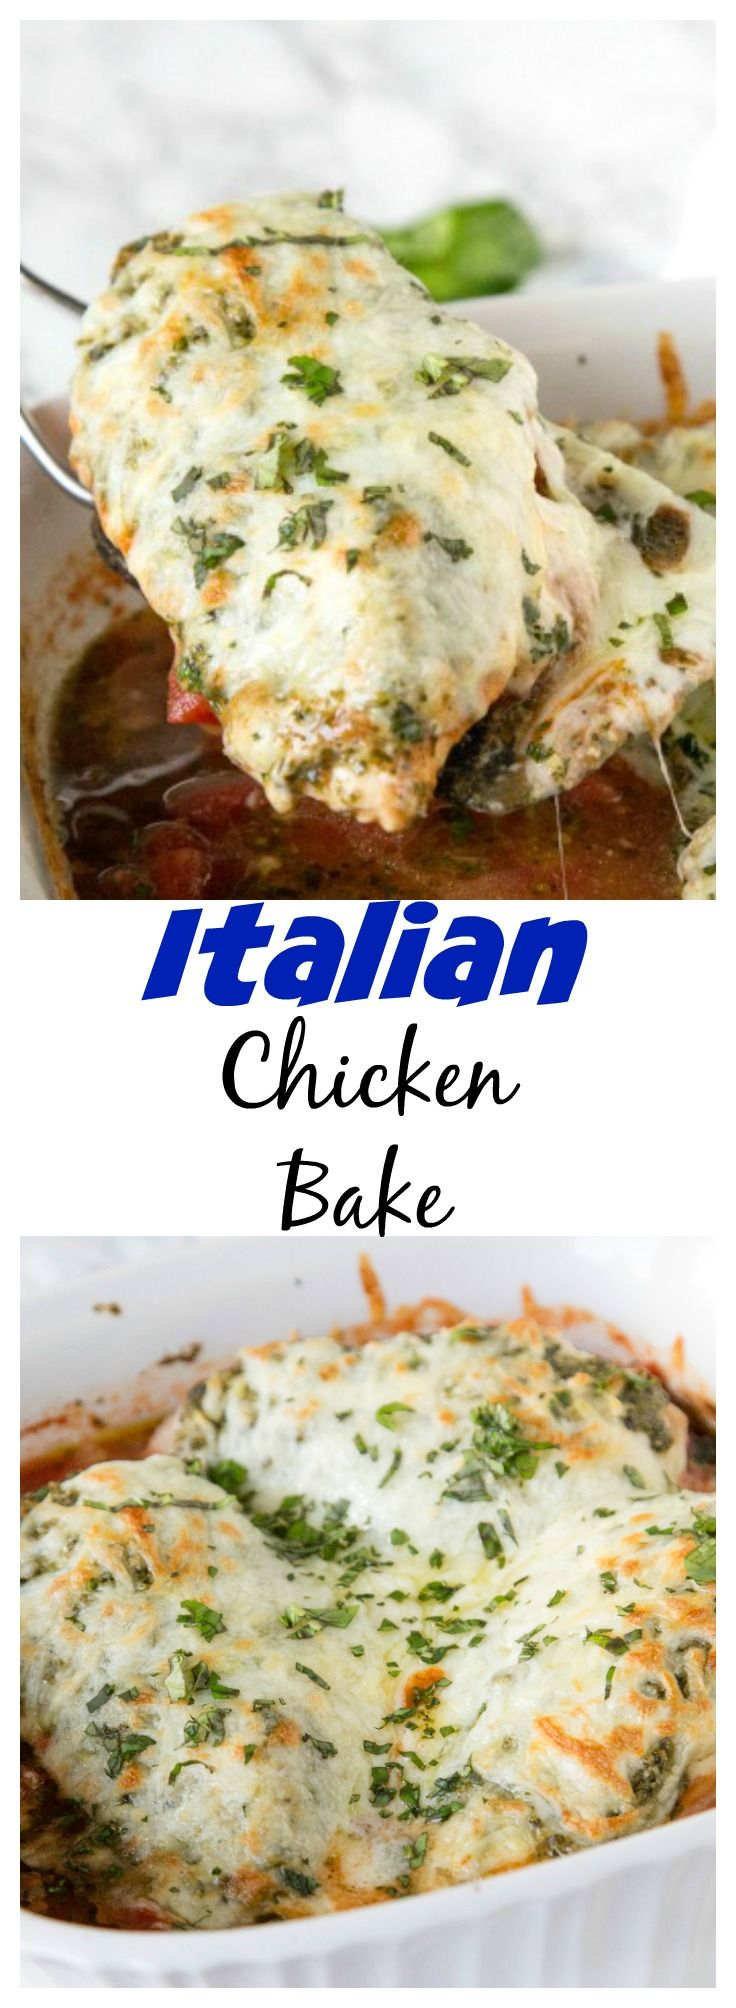 Italian Chicken Bake – just 5 simple ingredients for a delicious, cheesy, and perfect dinner dinner for any night of the week.